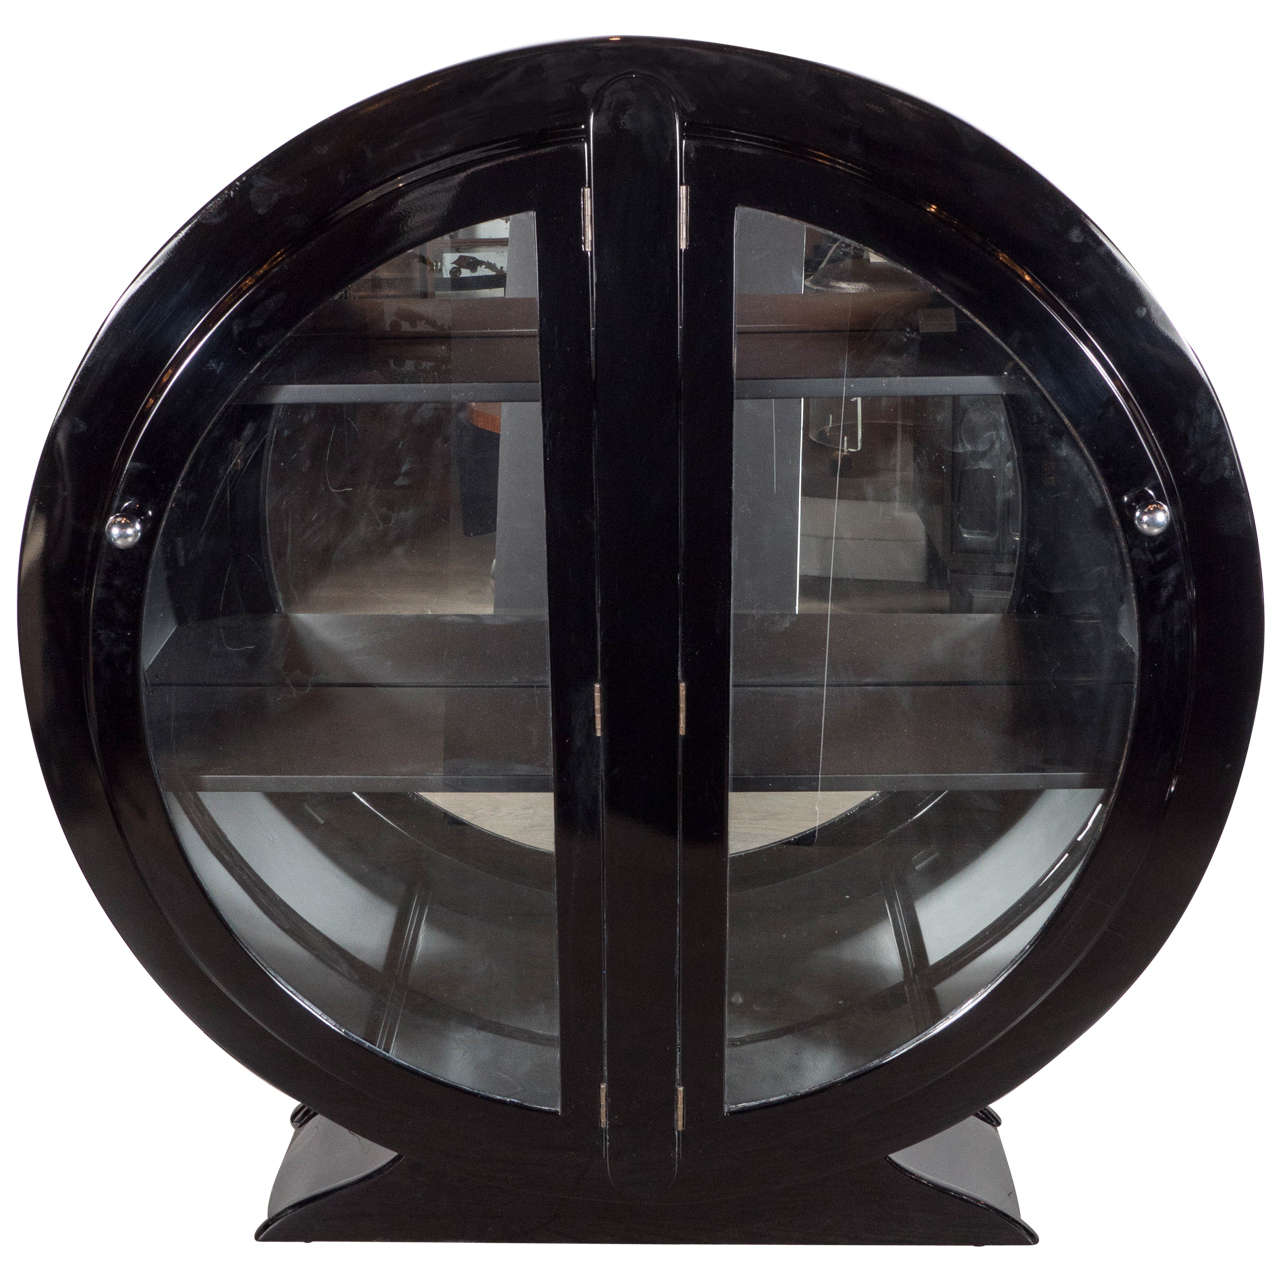 Art Deco Streamlined Bar/ Display Cabinet In Black Lacquer at 1stdibs